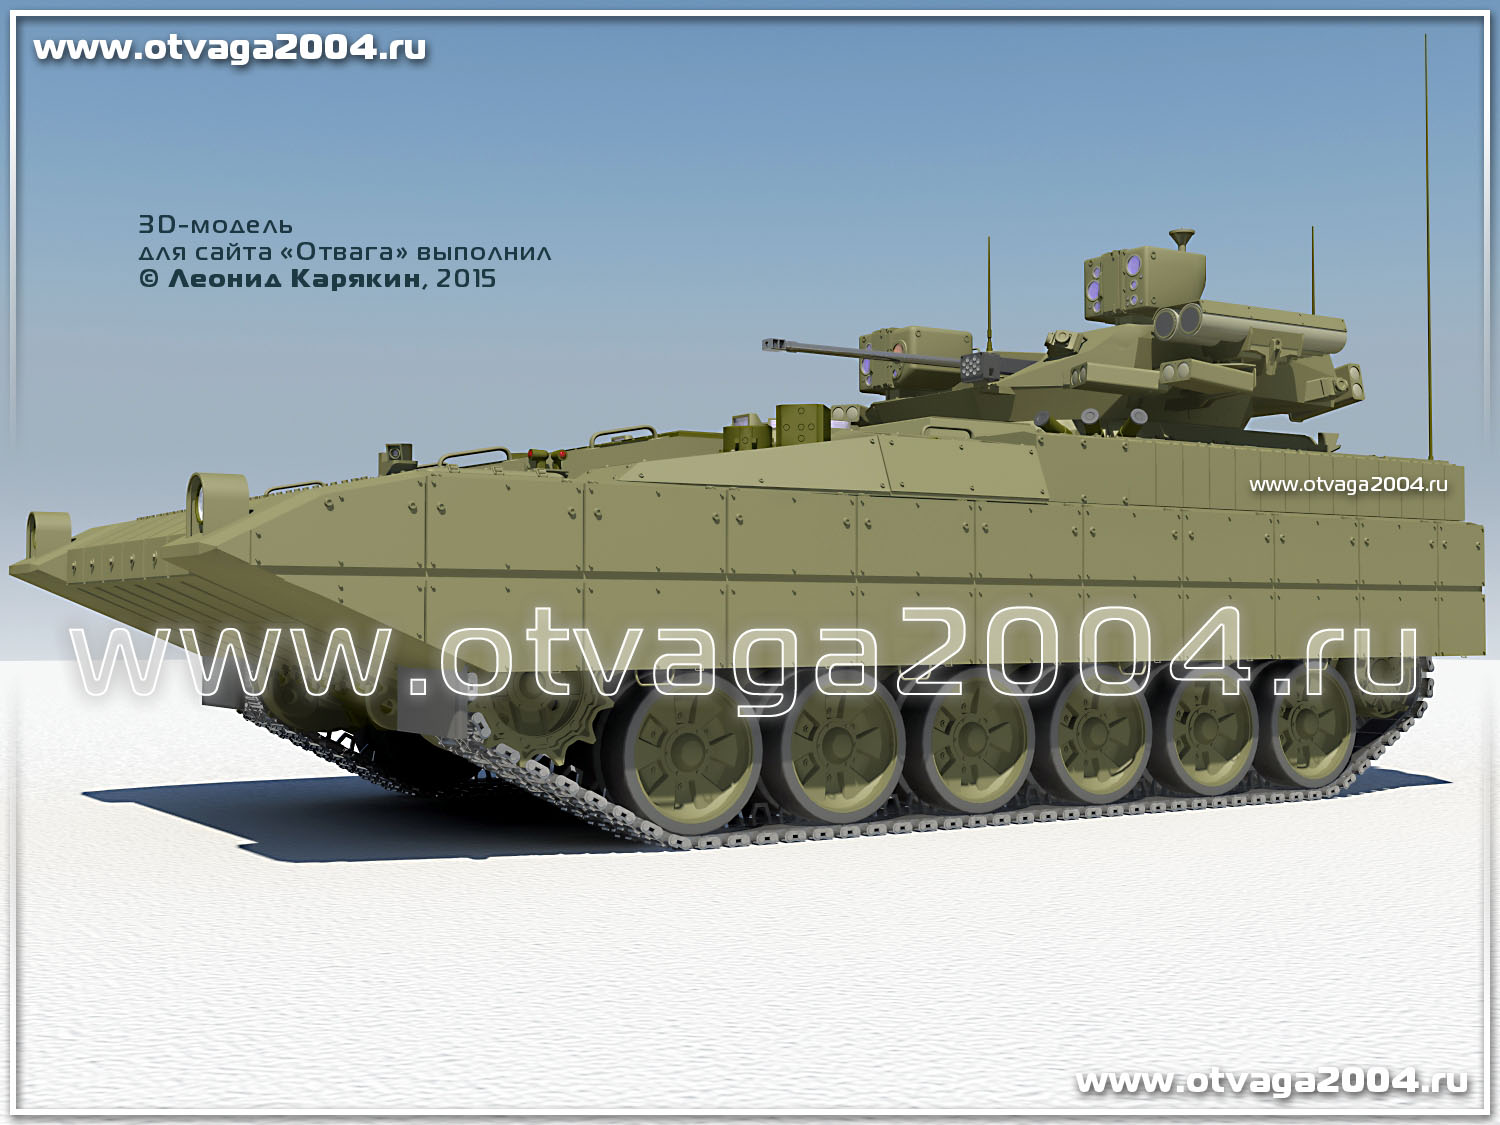 [Official] Armata Discussion thread #1 - Page 39 0_1129cc_c4f53e05_orig